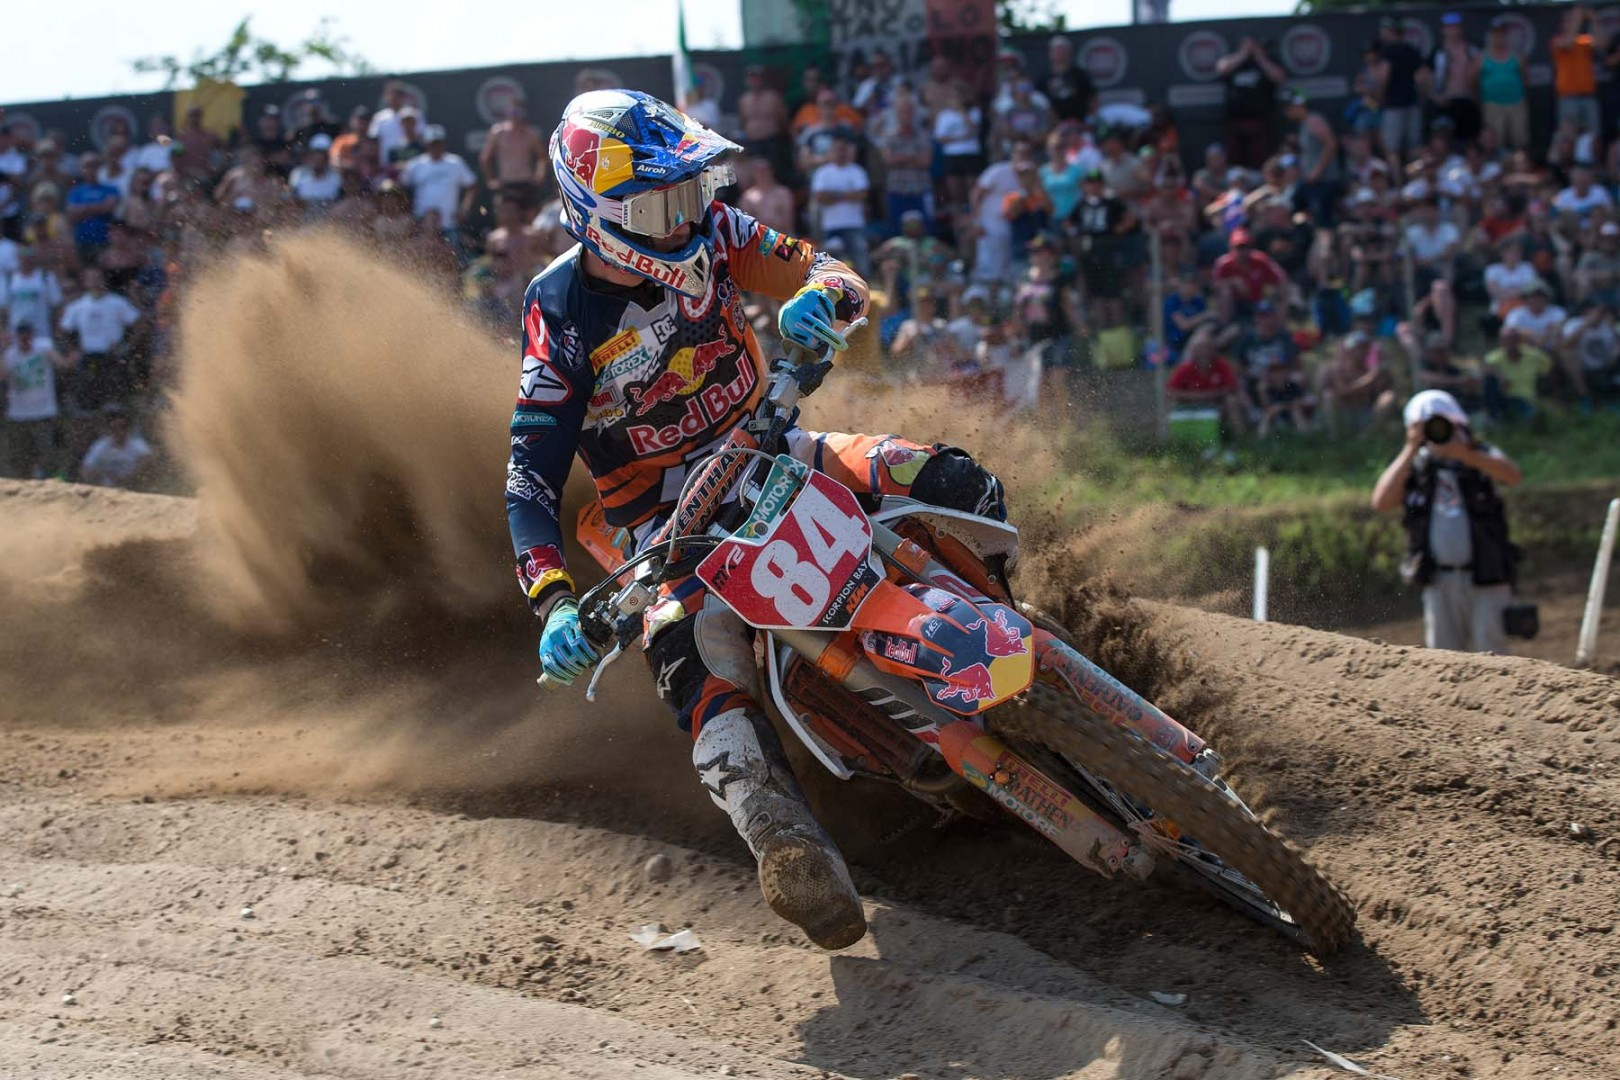 Red Bull Racing >> Home - Jeffrey Herlings #84